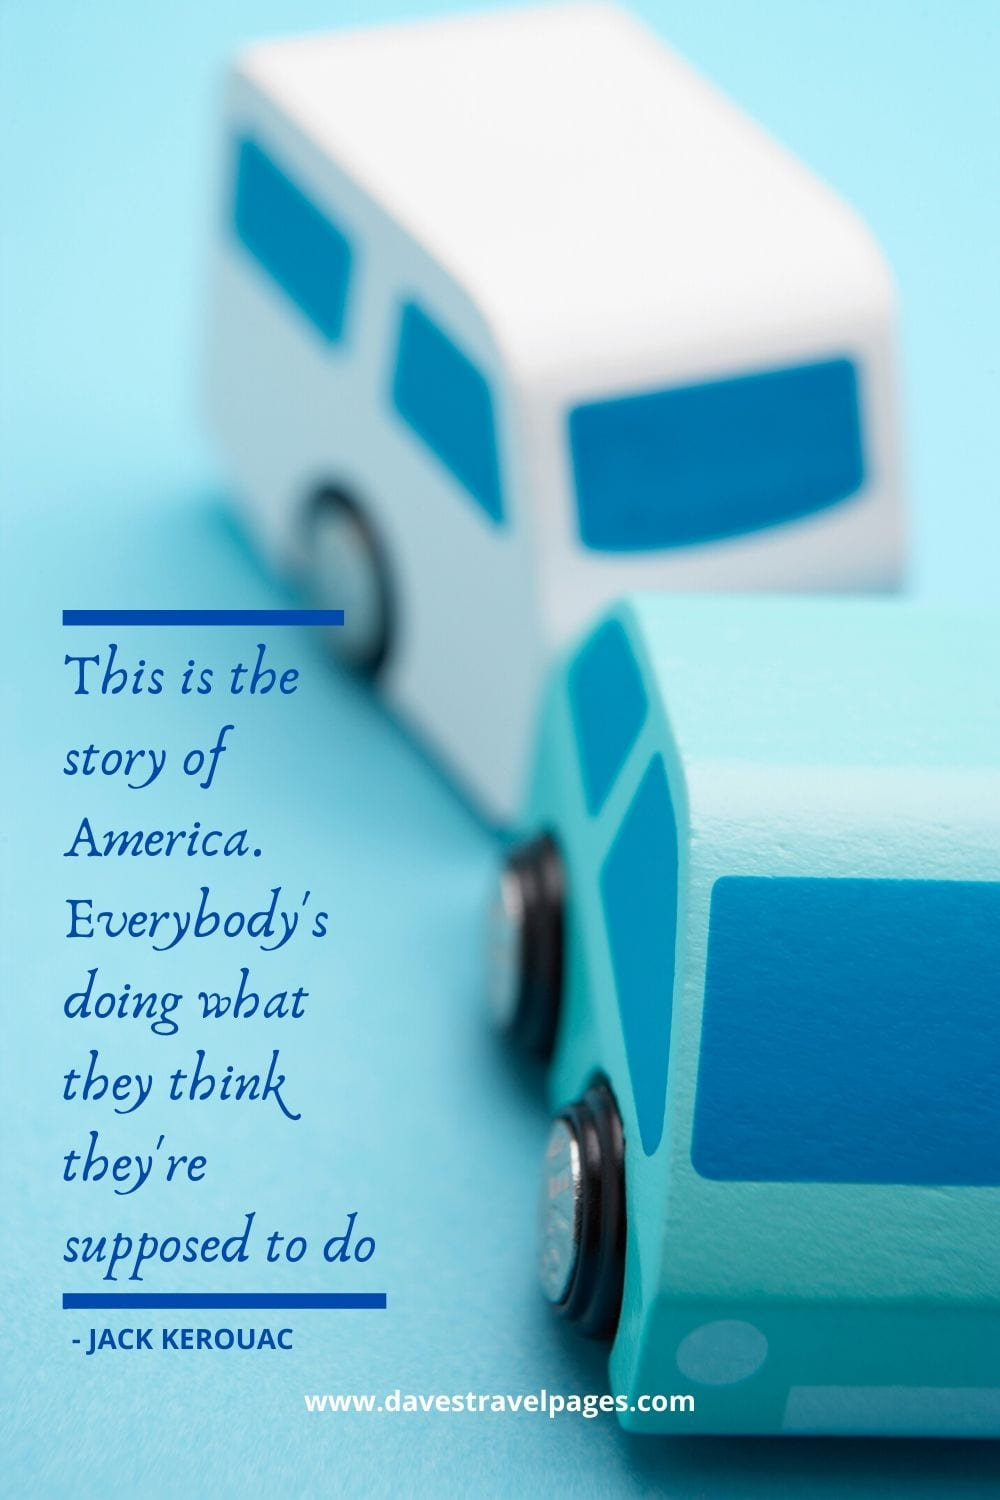 """This is the story of America. Everybody's doing what they think they're supposed to do."" - 'On The Road' Quote"